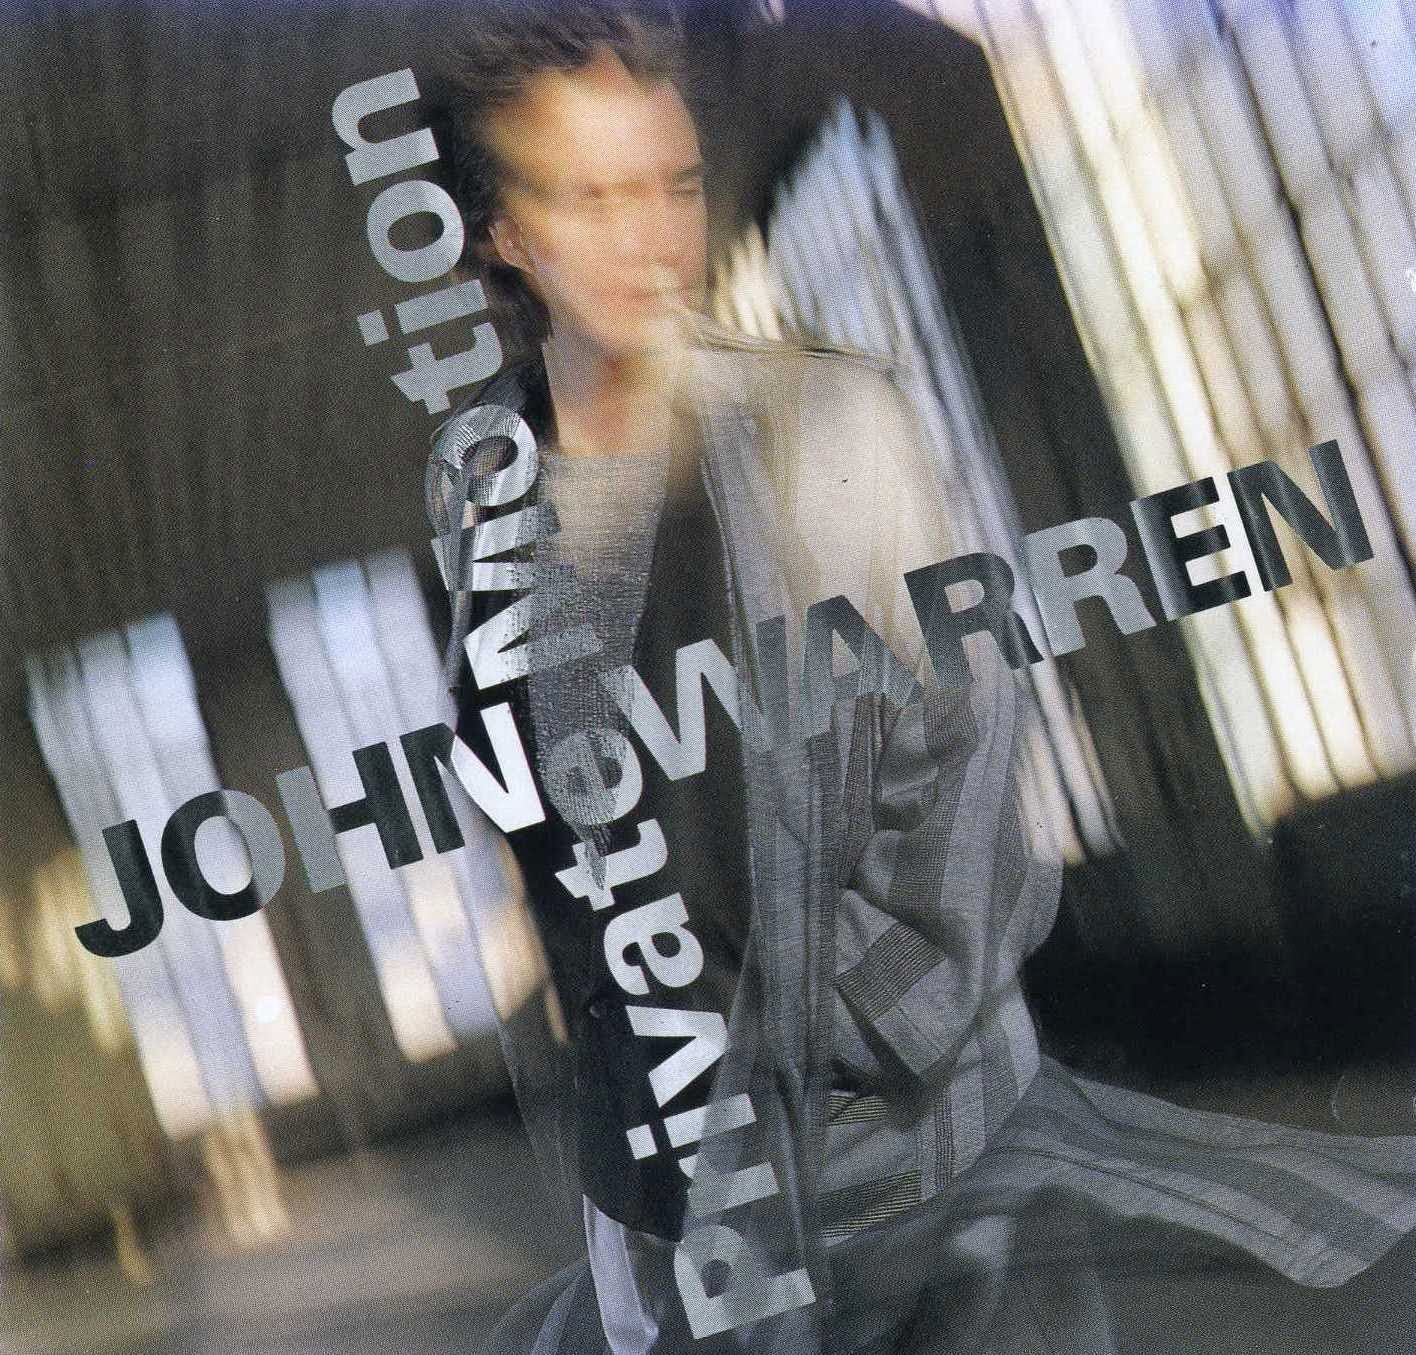 John Warren Private motion 1989 aor melodic rock